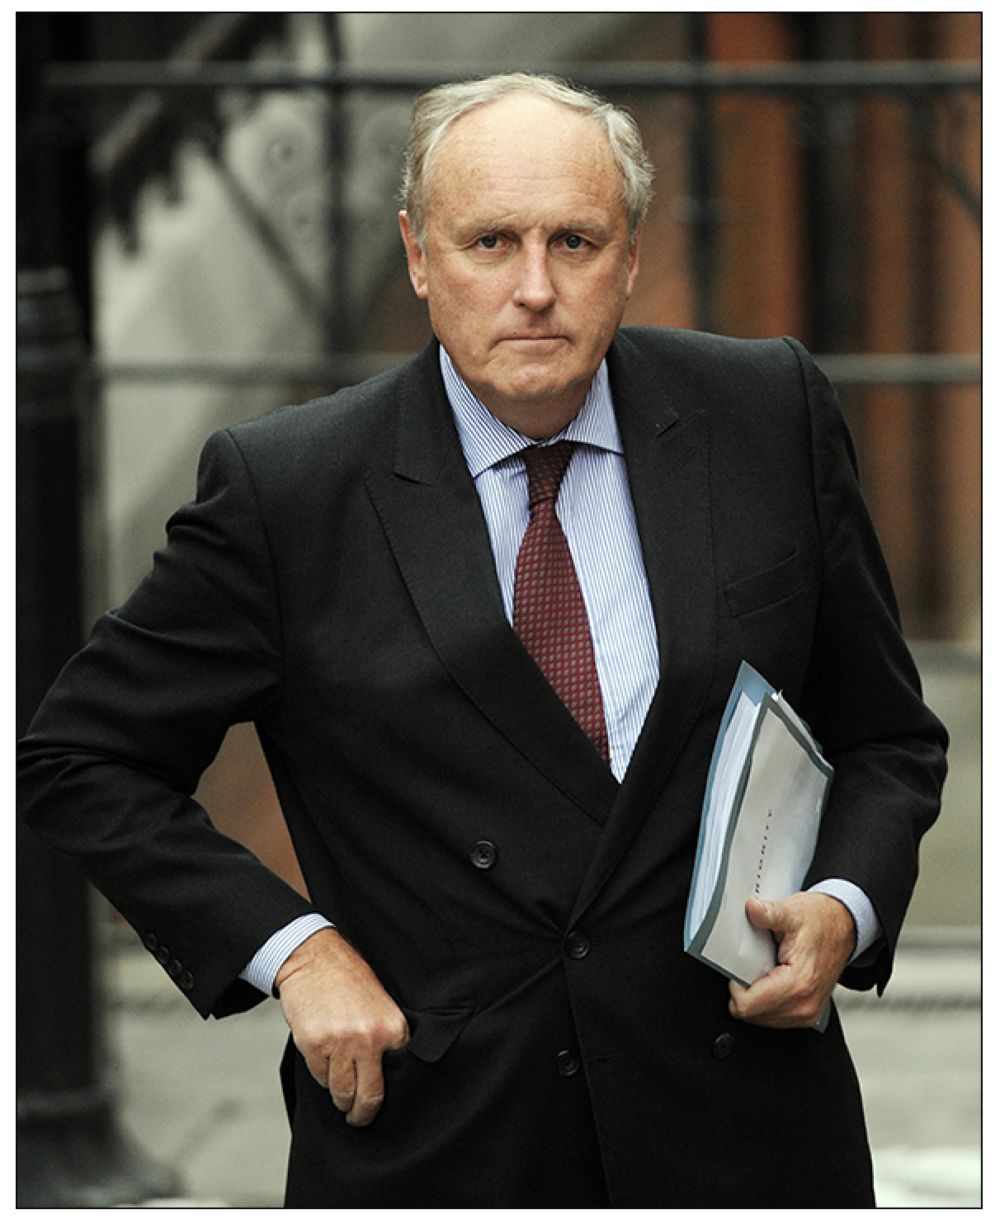 Defensive: Paul Dacre, editor-in-chief of the  Daily Mail  and  Mail on Sunday  and Chairman of Associated Newspapers at the Leveson Inquiry of 2012, at which he attacked Hugh Grant for his suggestion that a story describing his phone activities may have been unlawfully obtained (c) PA